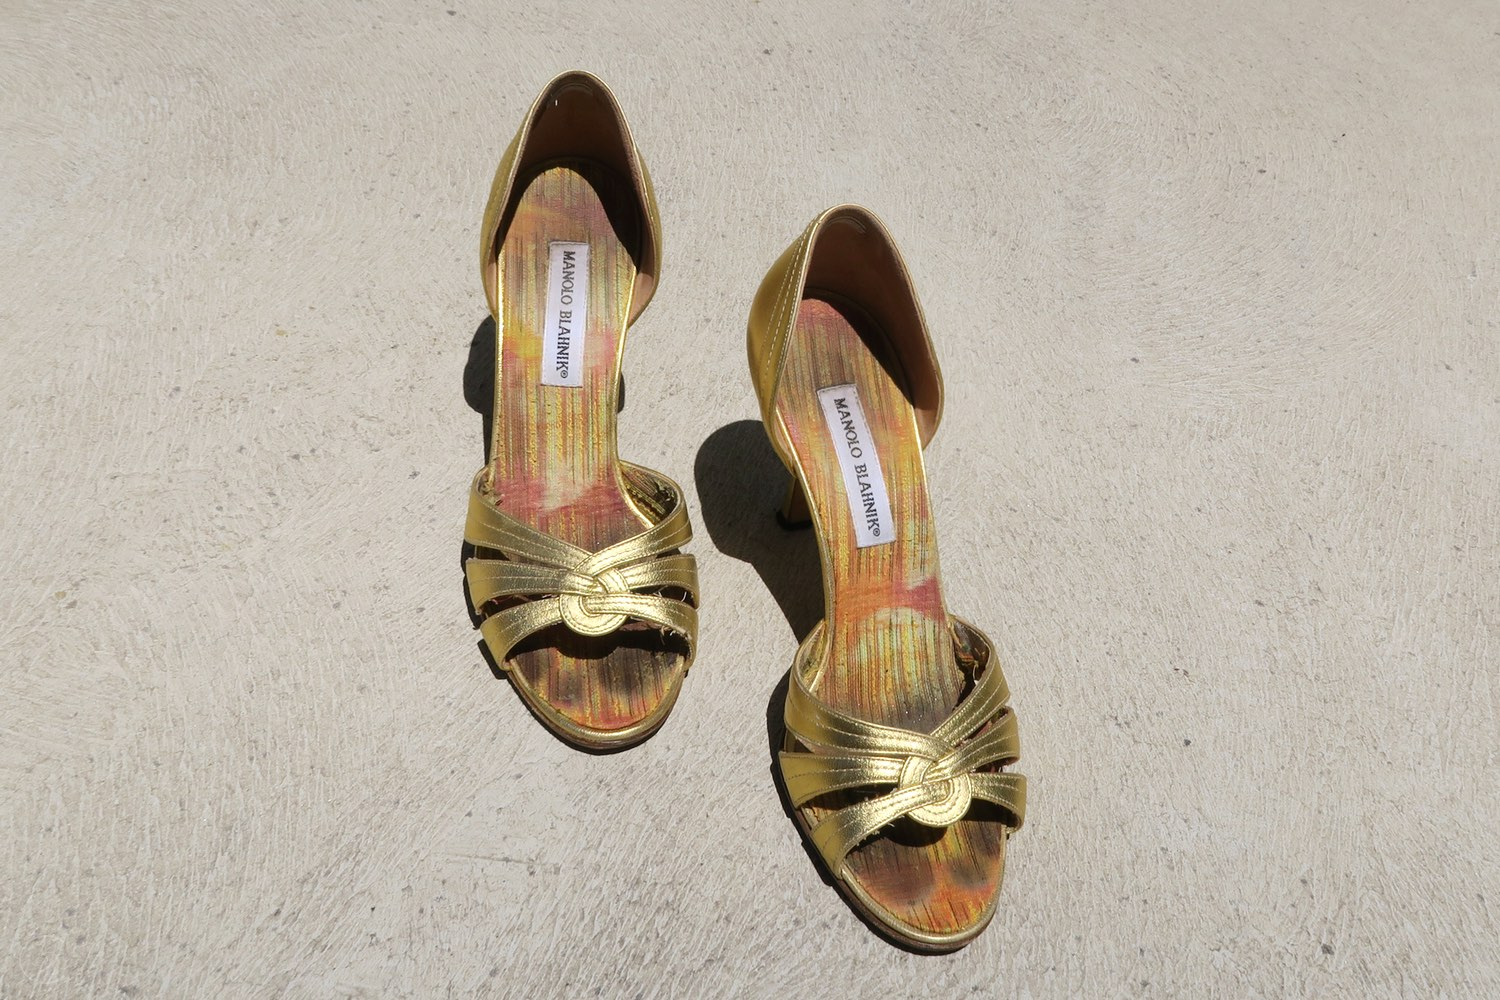 gold-manolo-blahnik-character-32-shoes